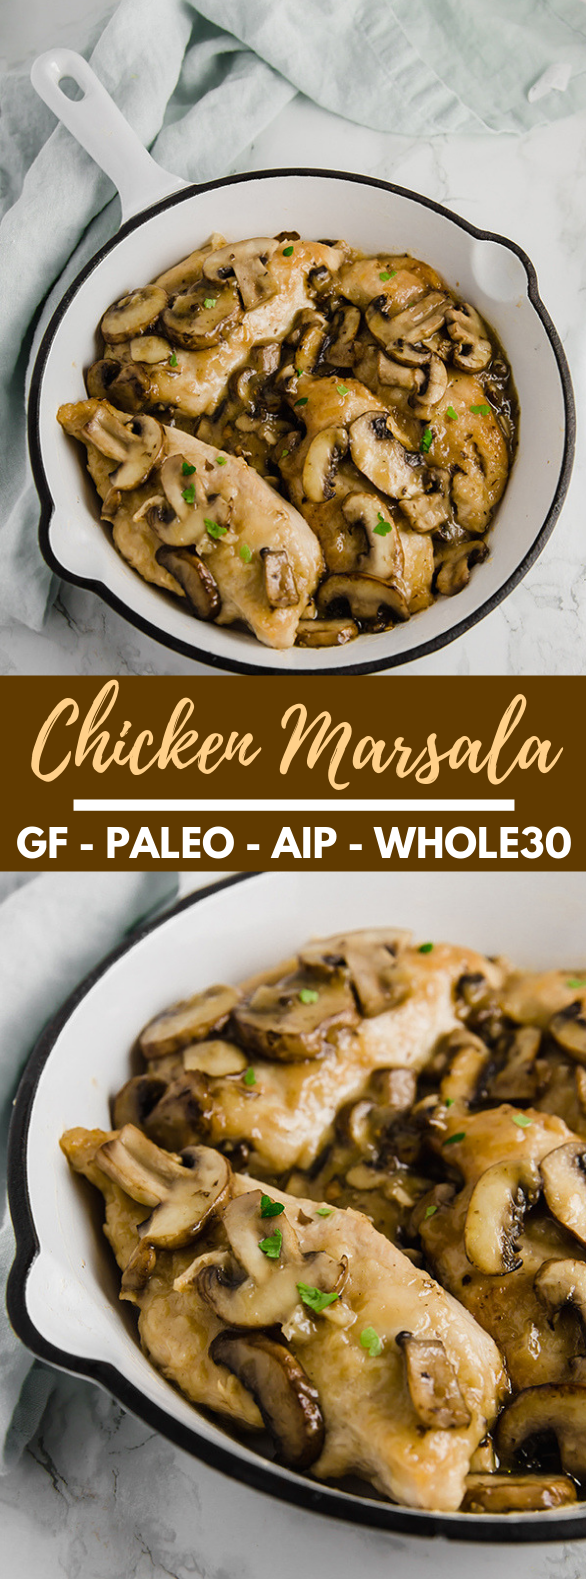 Chicken Marsala (Whole30, Paleo, AIP) #diet #healthy